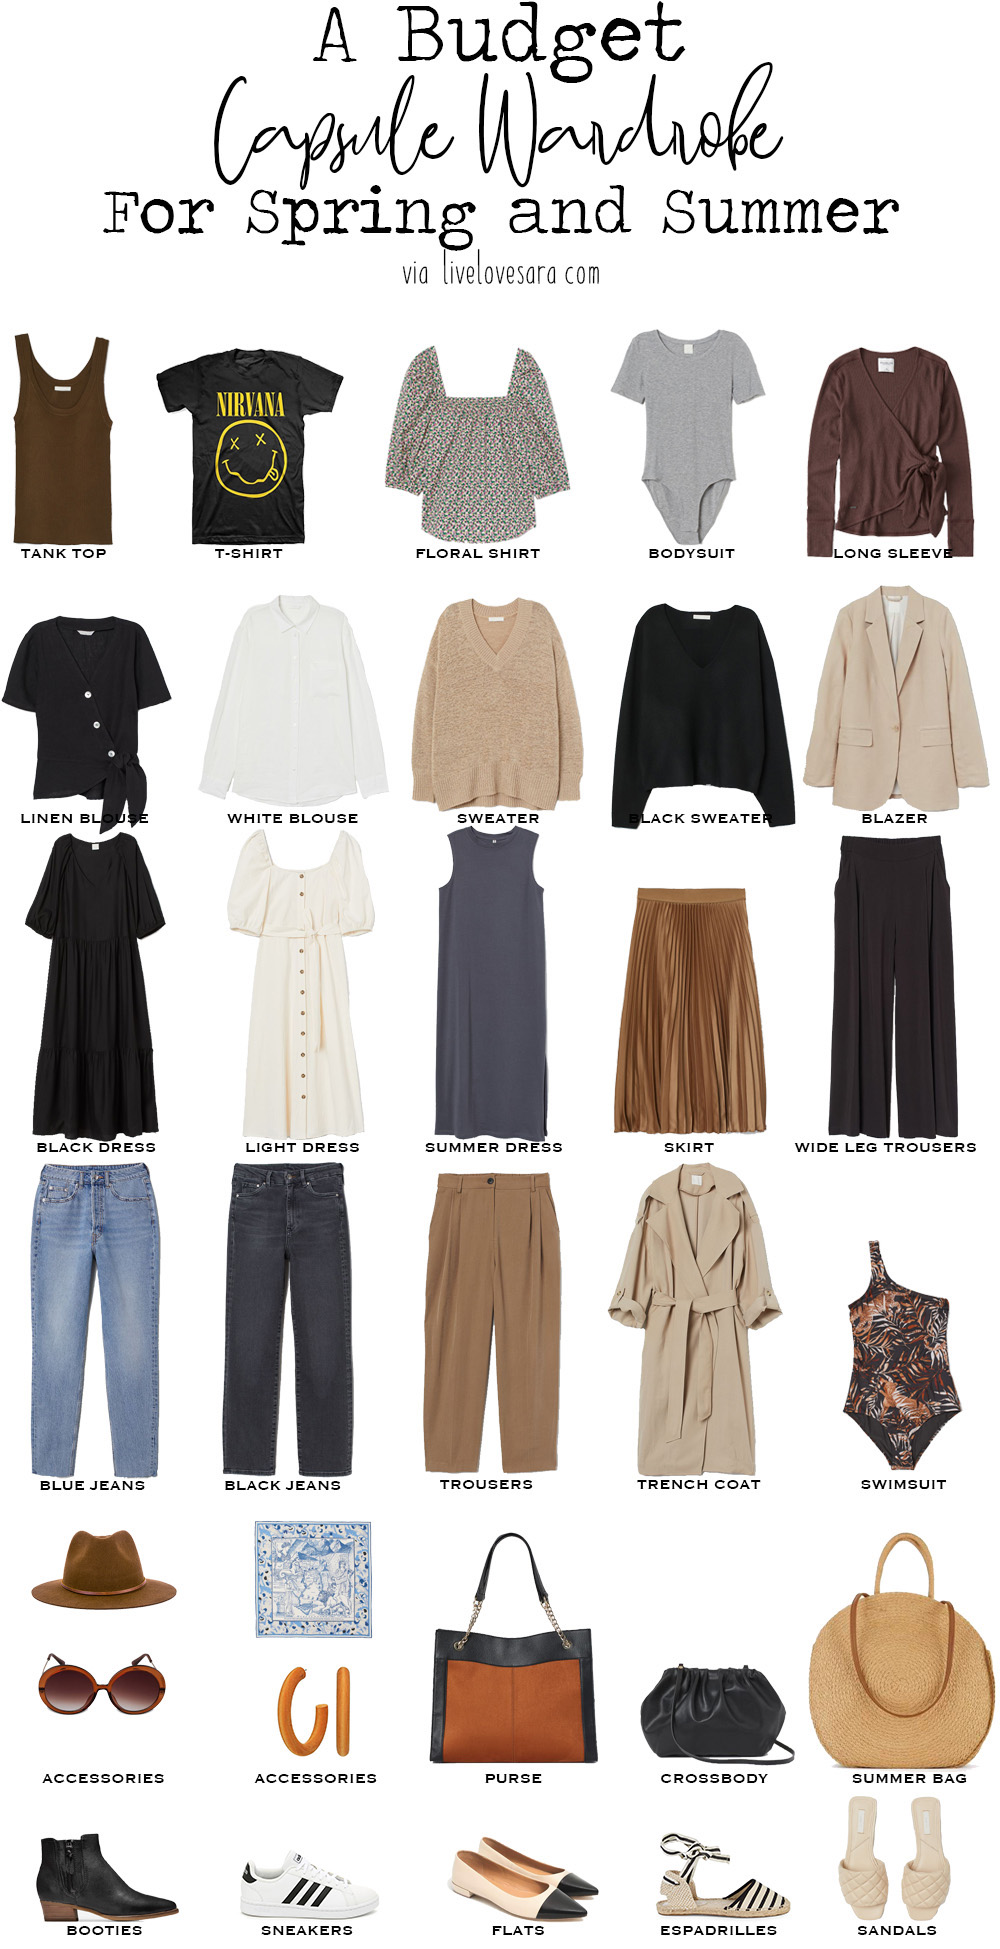 How to Build a Budget Capsule Wardrobe for Spring and Summer